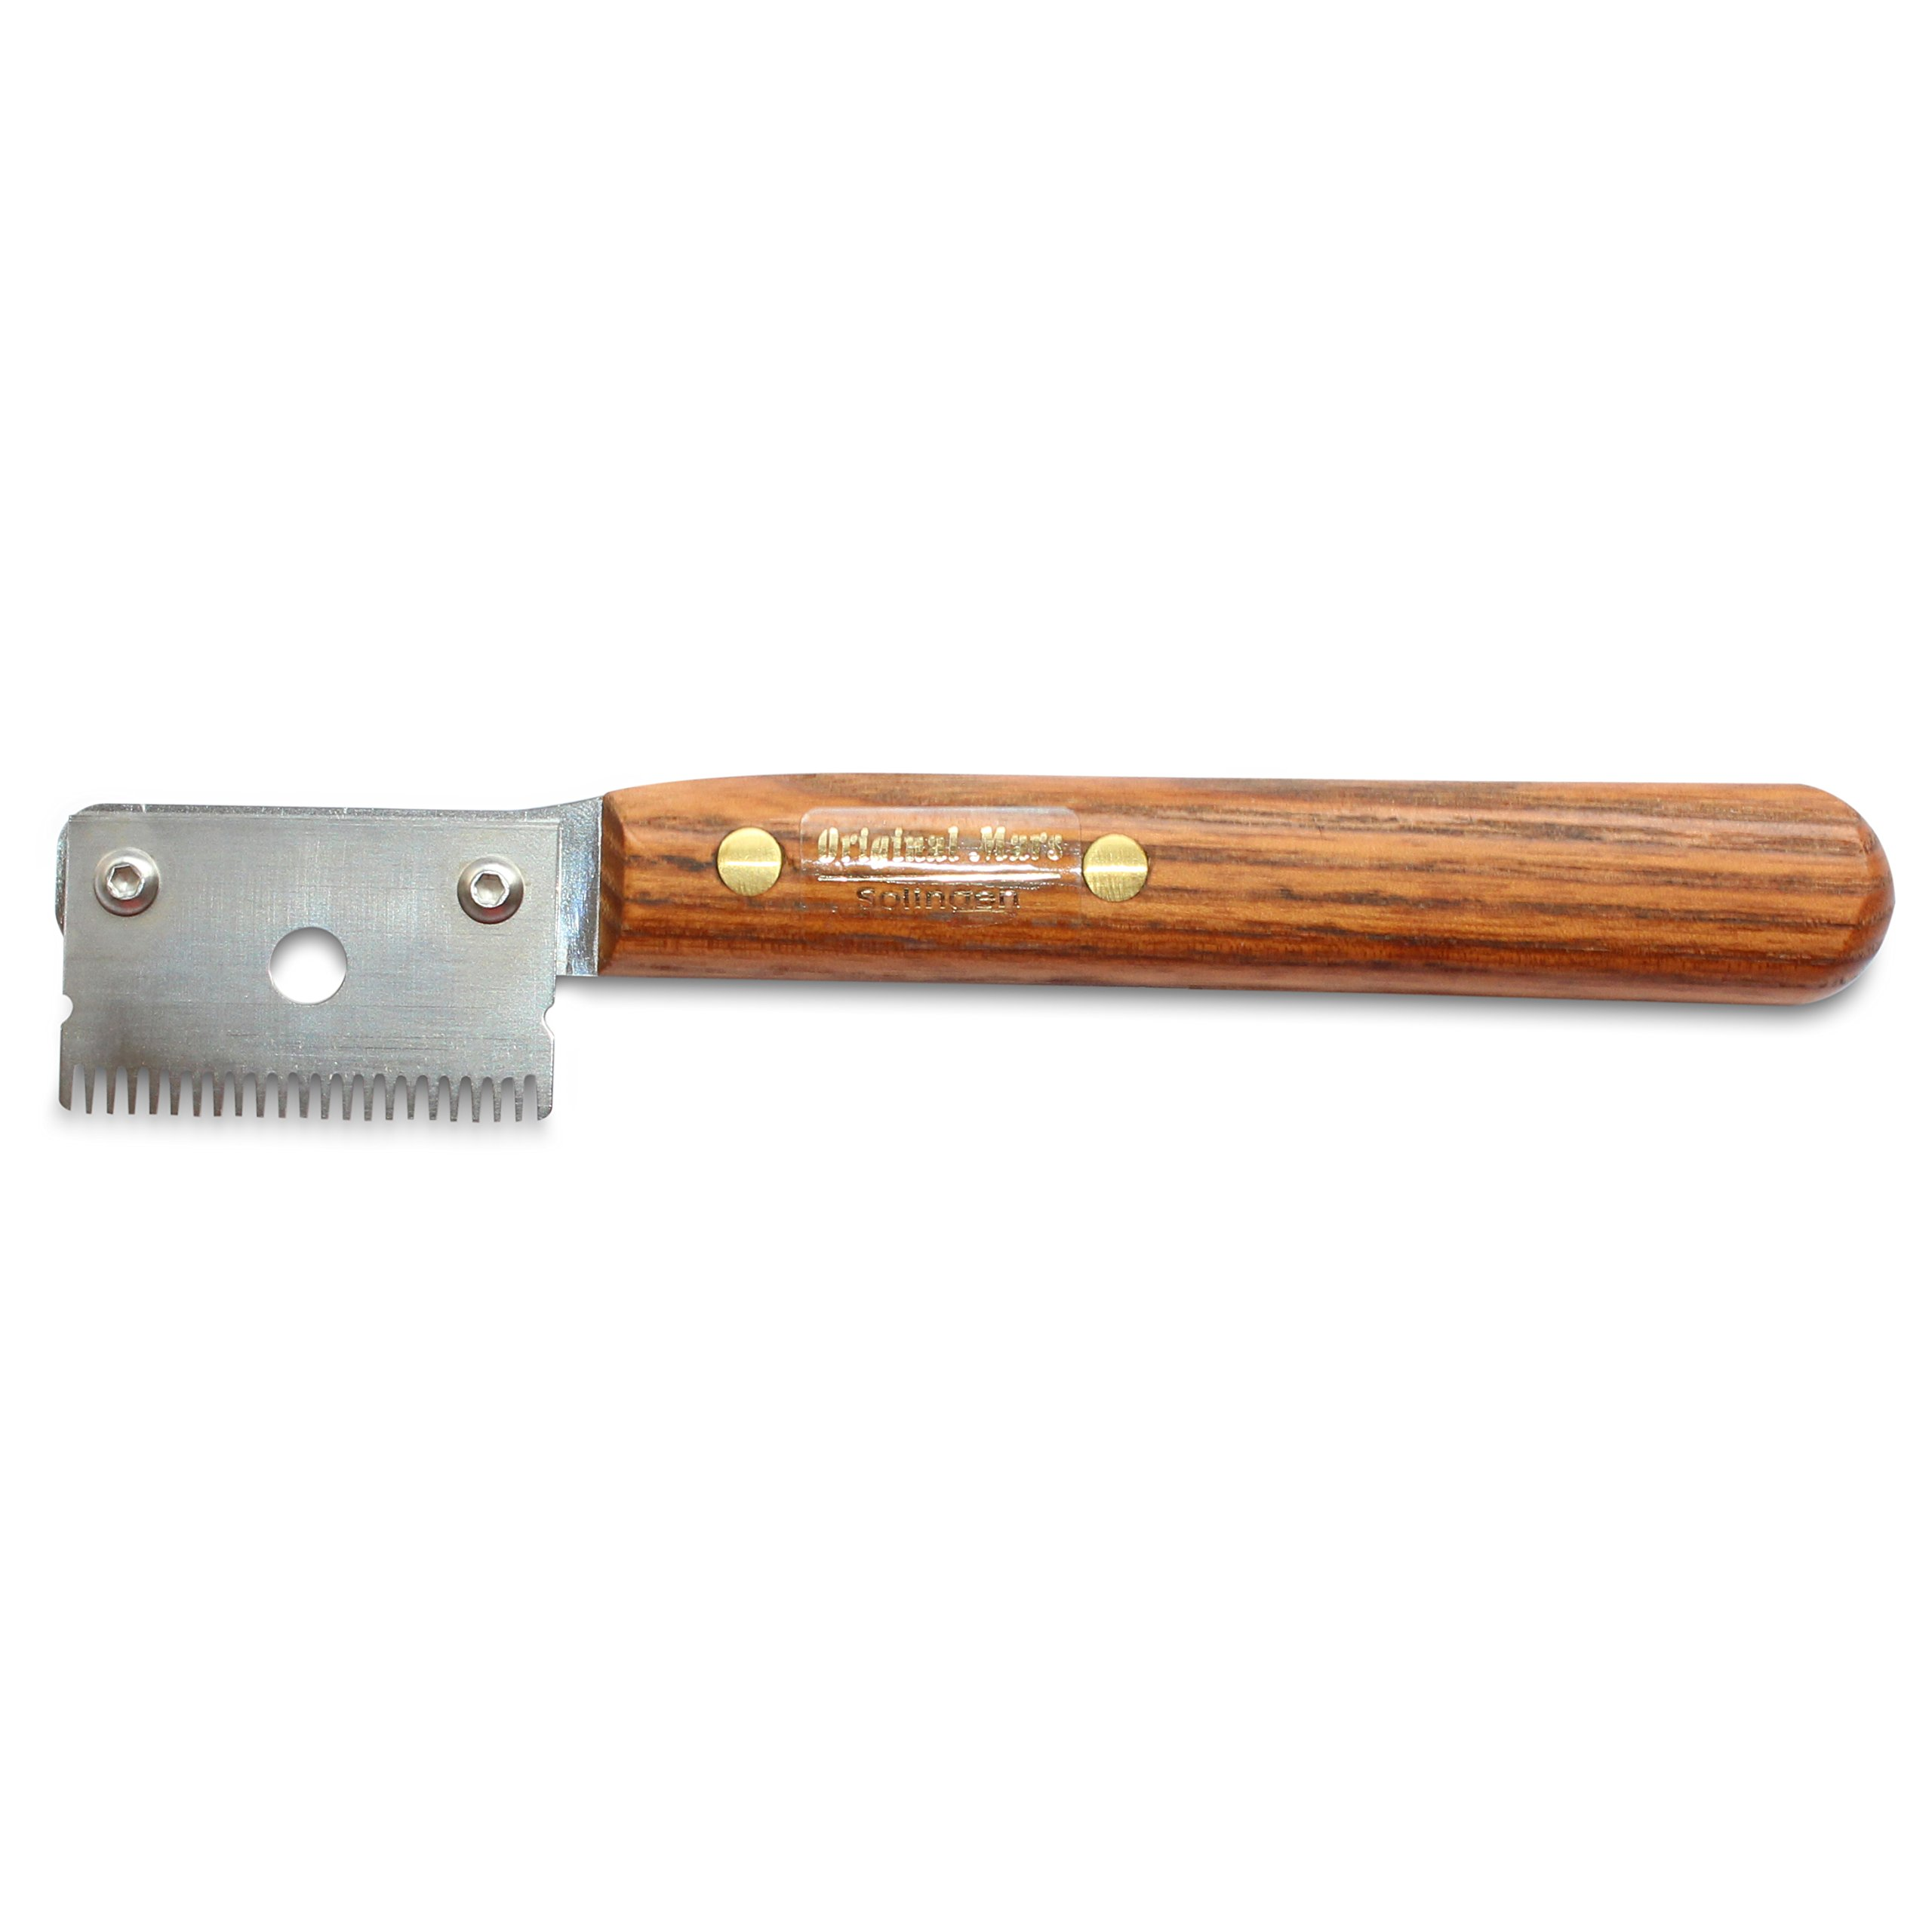 Mars Professional Dog Stripping Knife Grooming Tool, Specialty Double Usage, Right-Handed, Medium